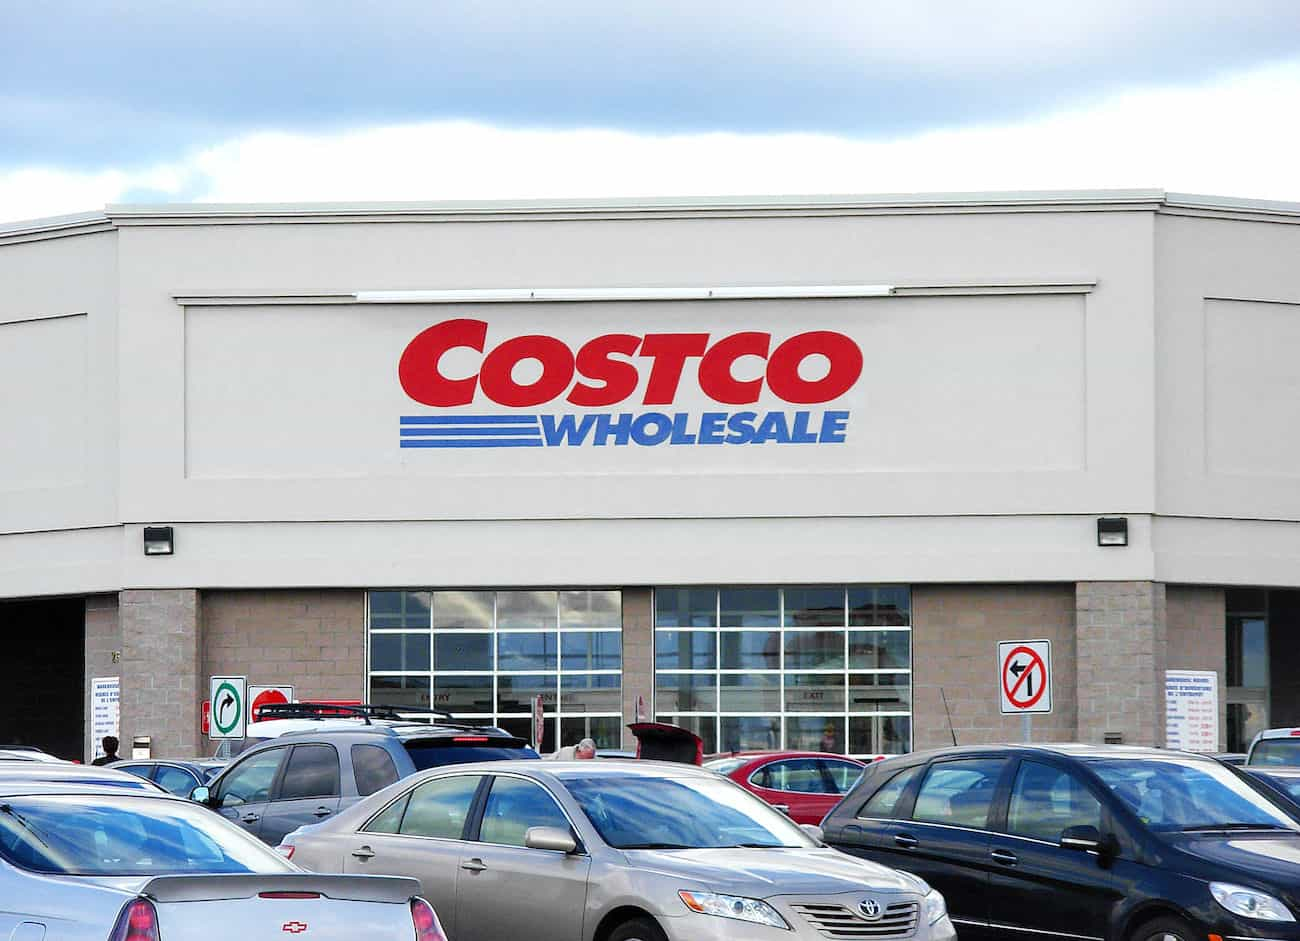 Best Costco membership deal with image of storefront